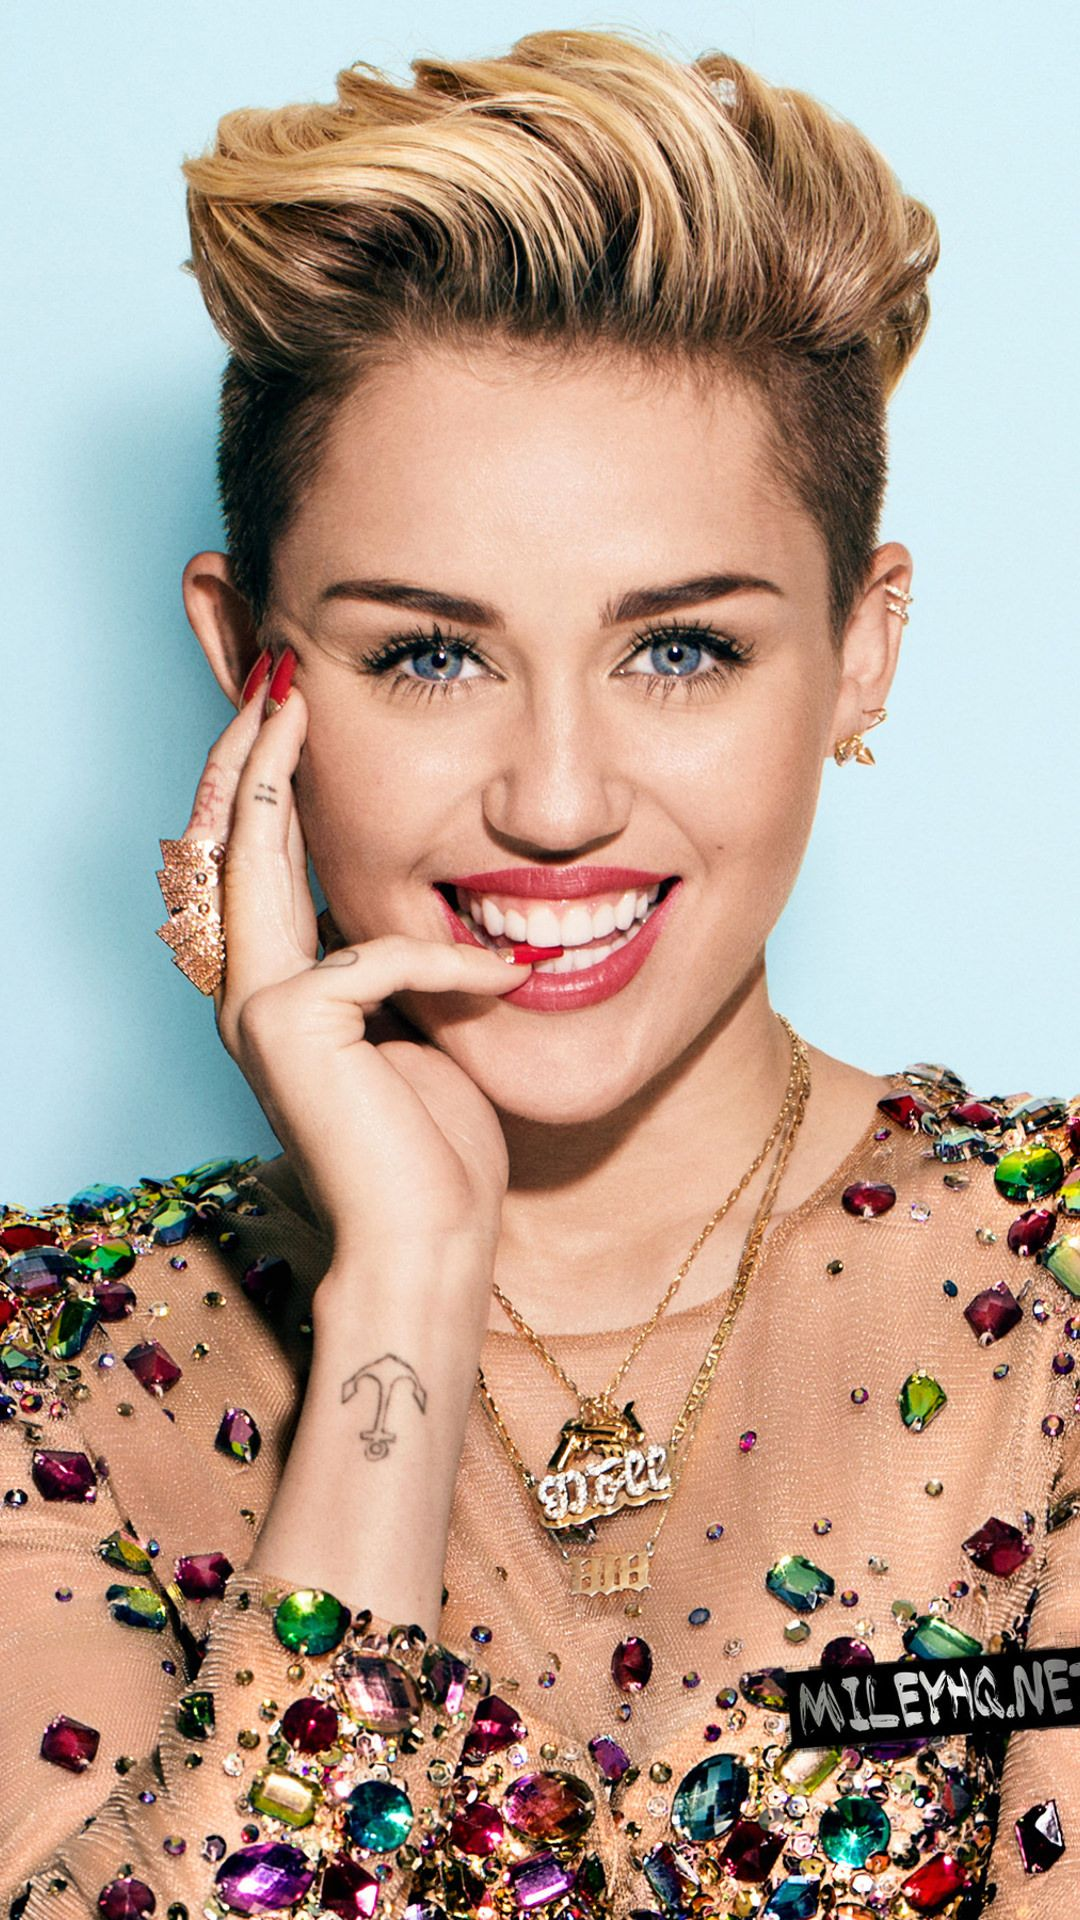 Miley Cyrus Iphone Wallpaper Miley Cyrus Hair Miley Cyrus Fan Miley Cyrus